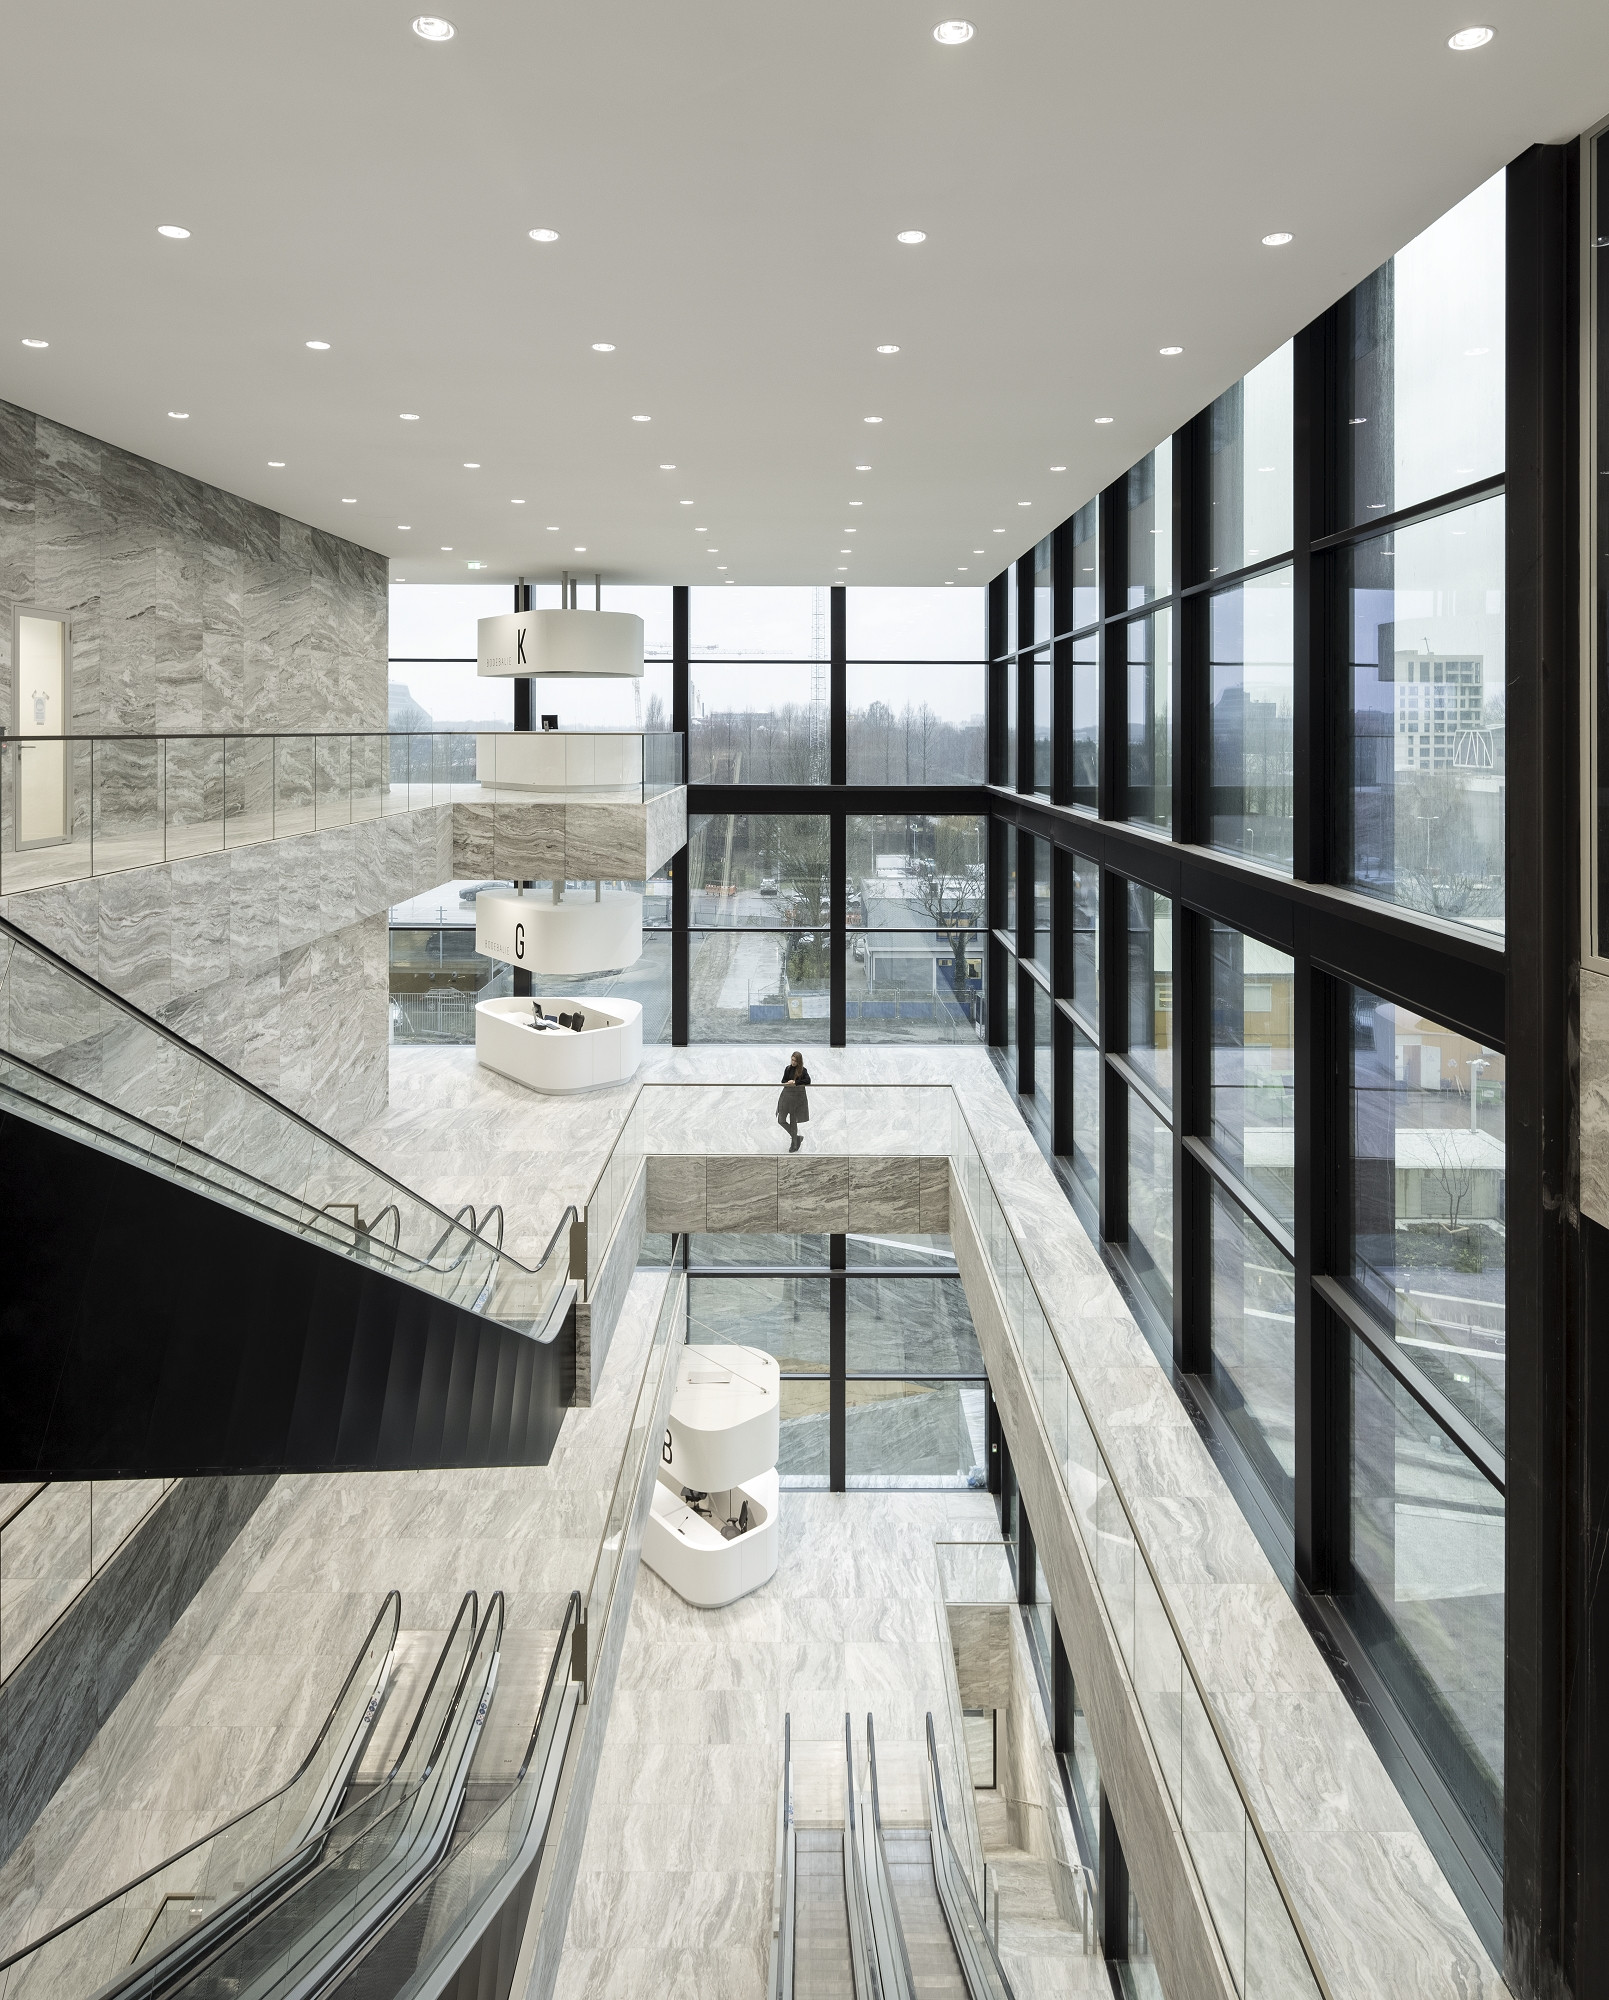 A chic courthouse in Amsterdam